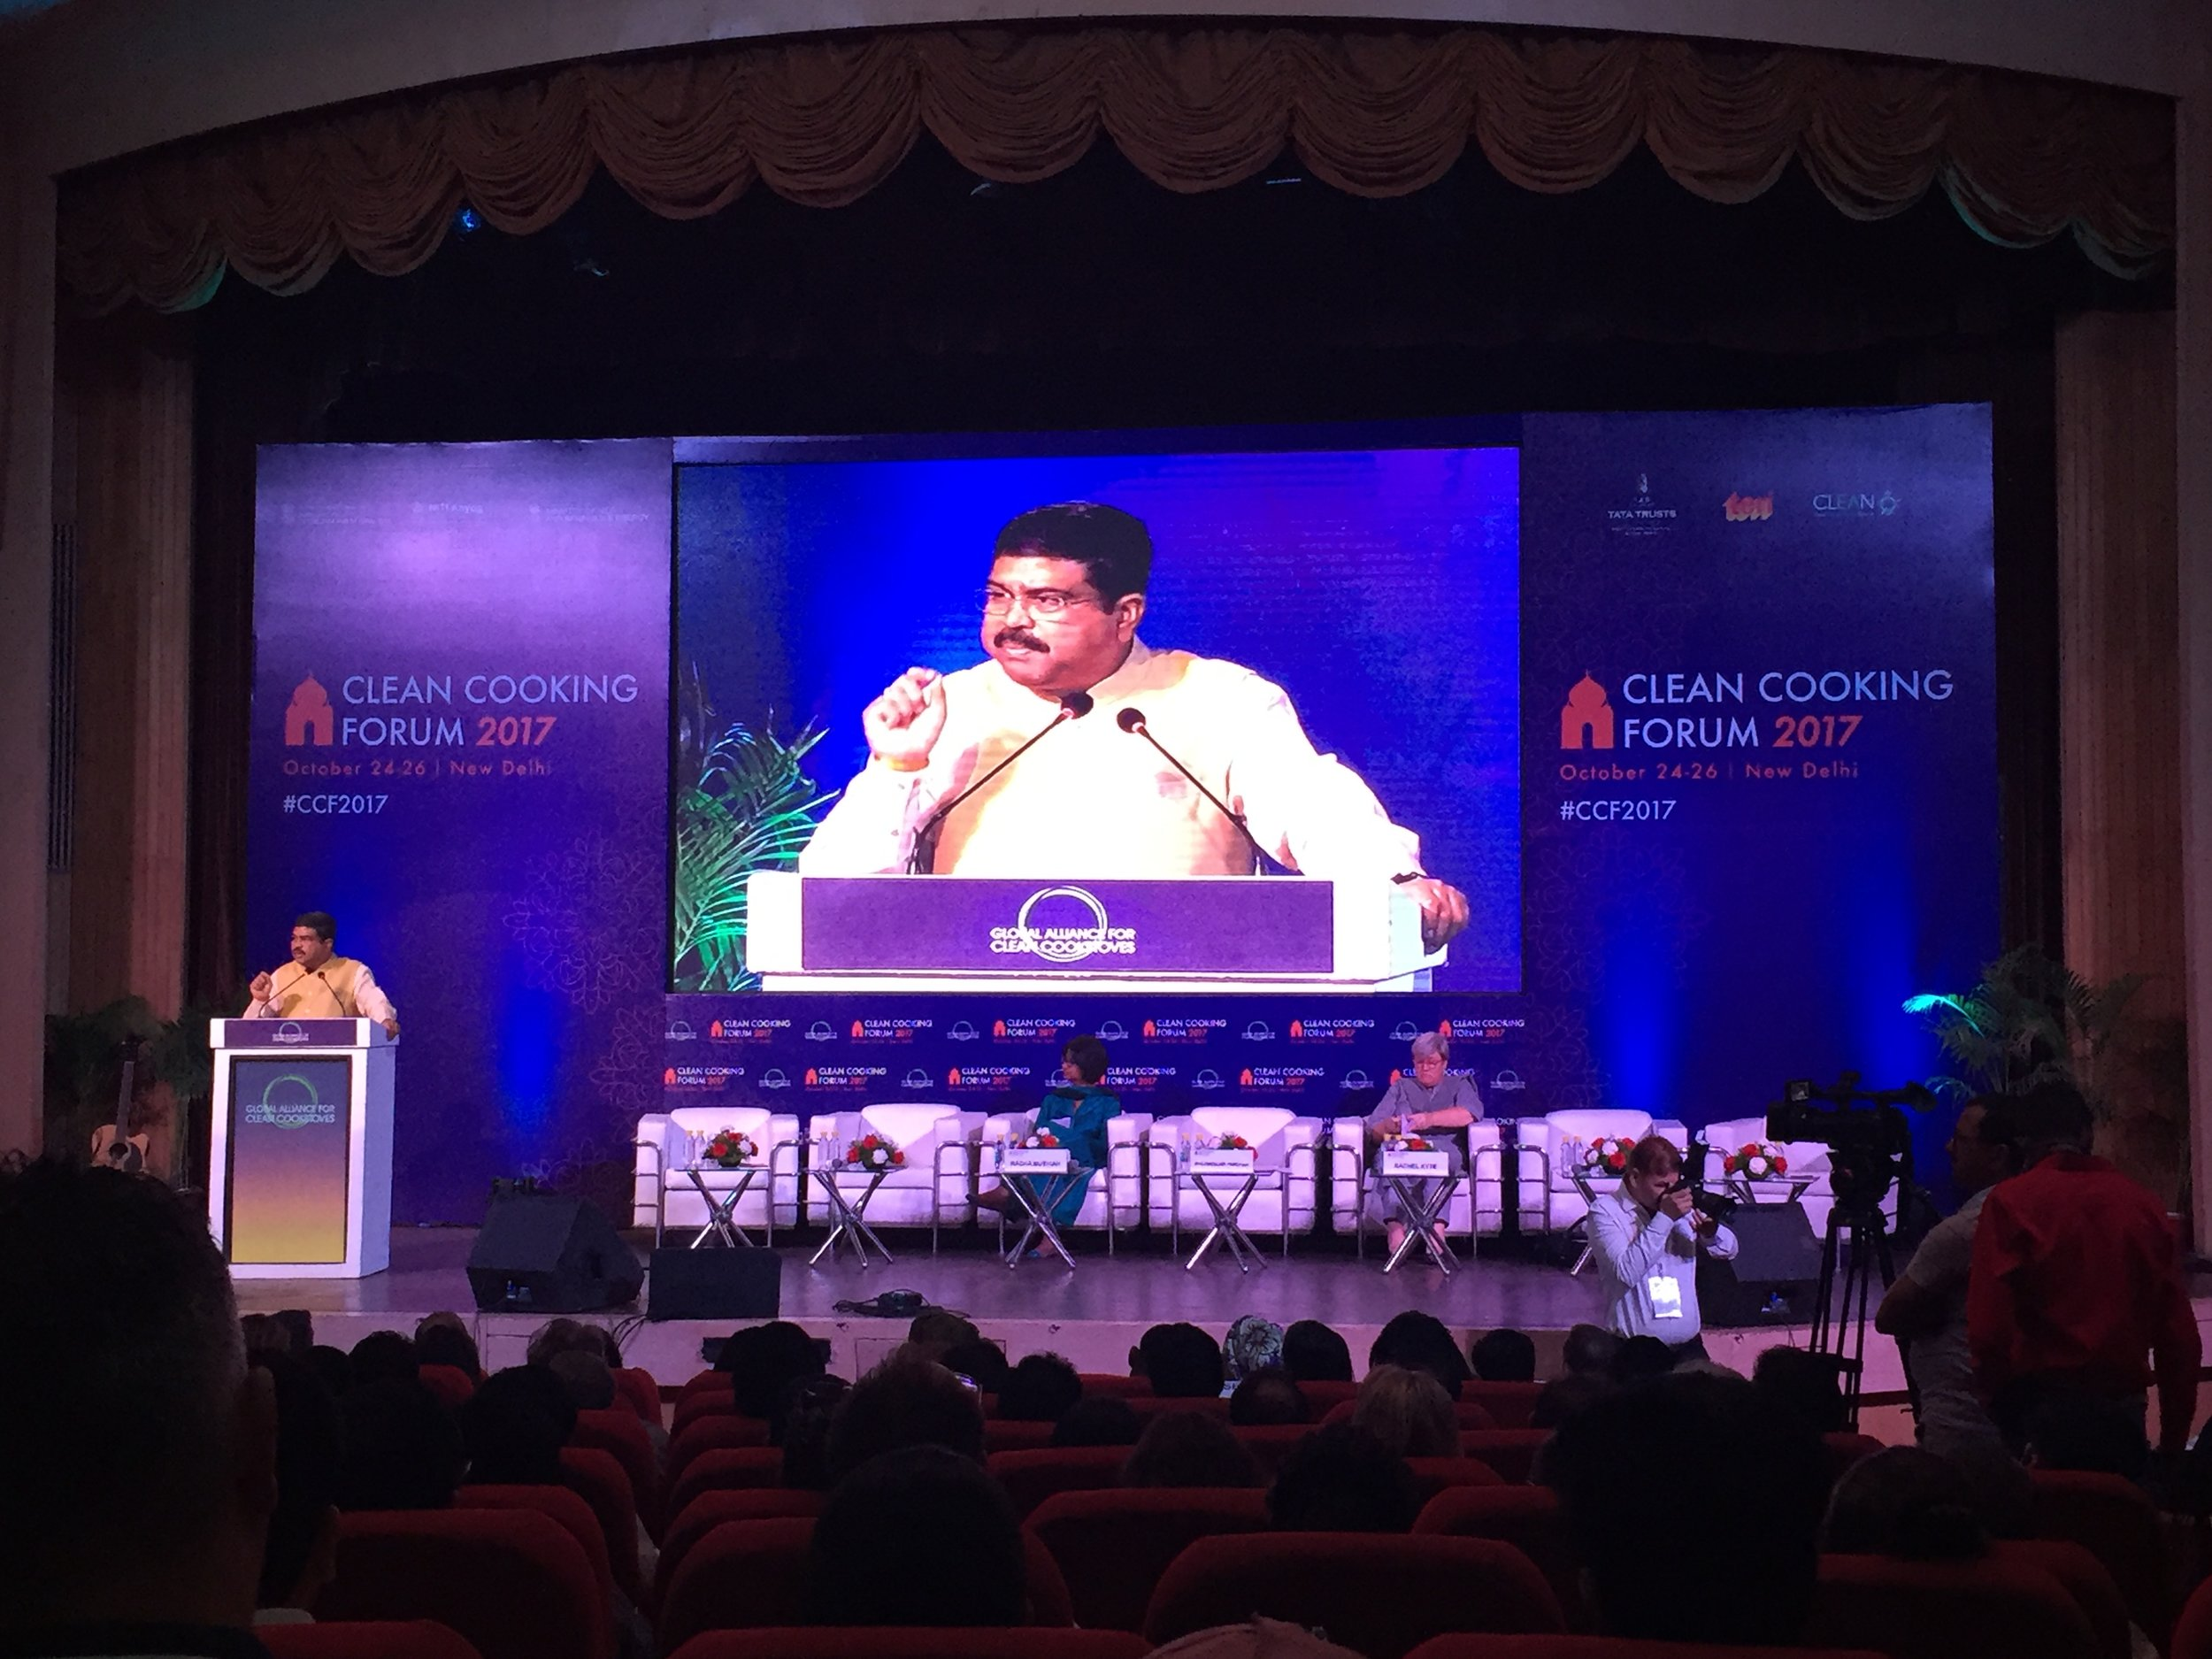 Mr. Dharmendra Pradhan, Minister of State for Petroleum and Natural Gas in the Indian Government, highlights India's LPG model at the Clean Cooking Forum 2017.